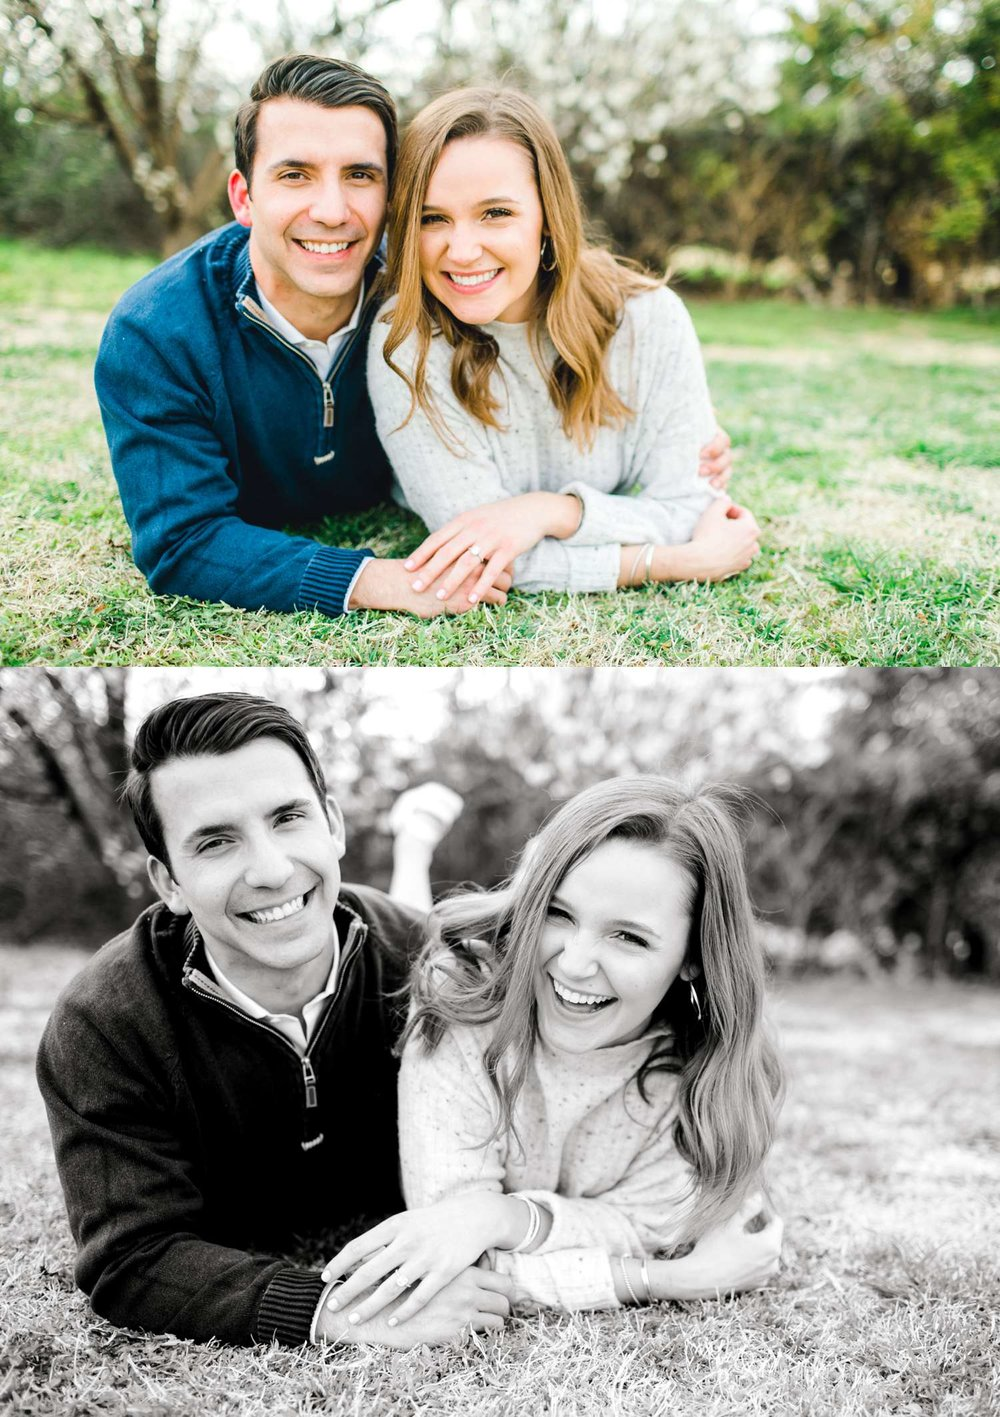 CAROLINE+CHRISTIAN+ALLEEJ+ENGAGEMENTS+LUBBOCK+WEDDING+PHOTOGRAPHER+FIRST+BAPTIST+CHURCH_0015.jpg